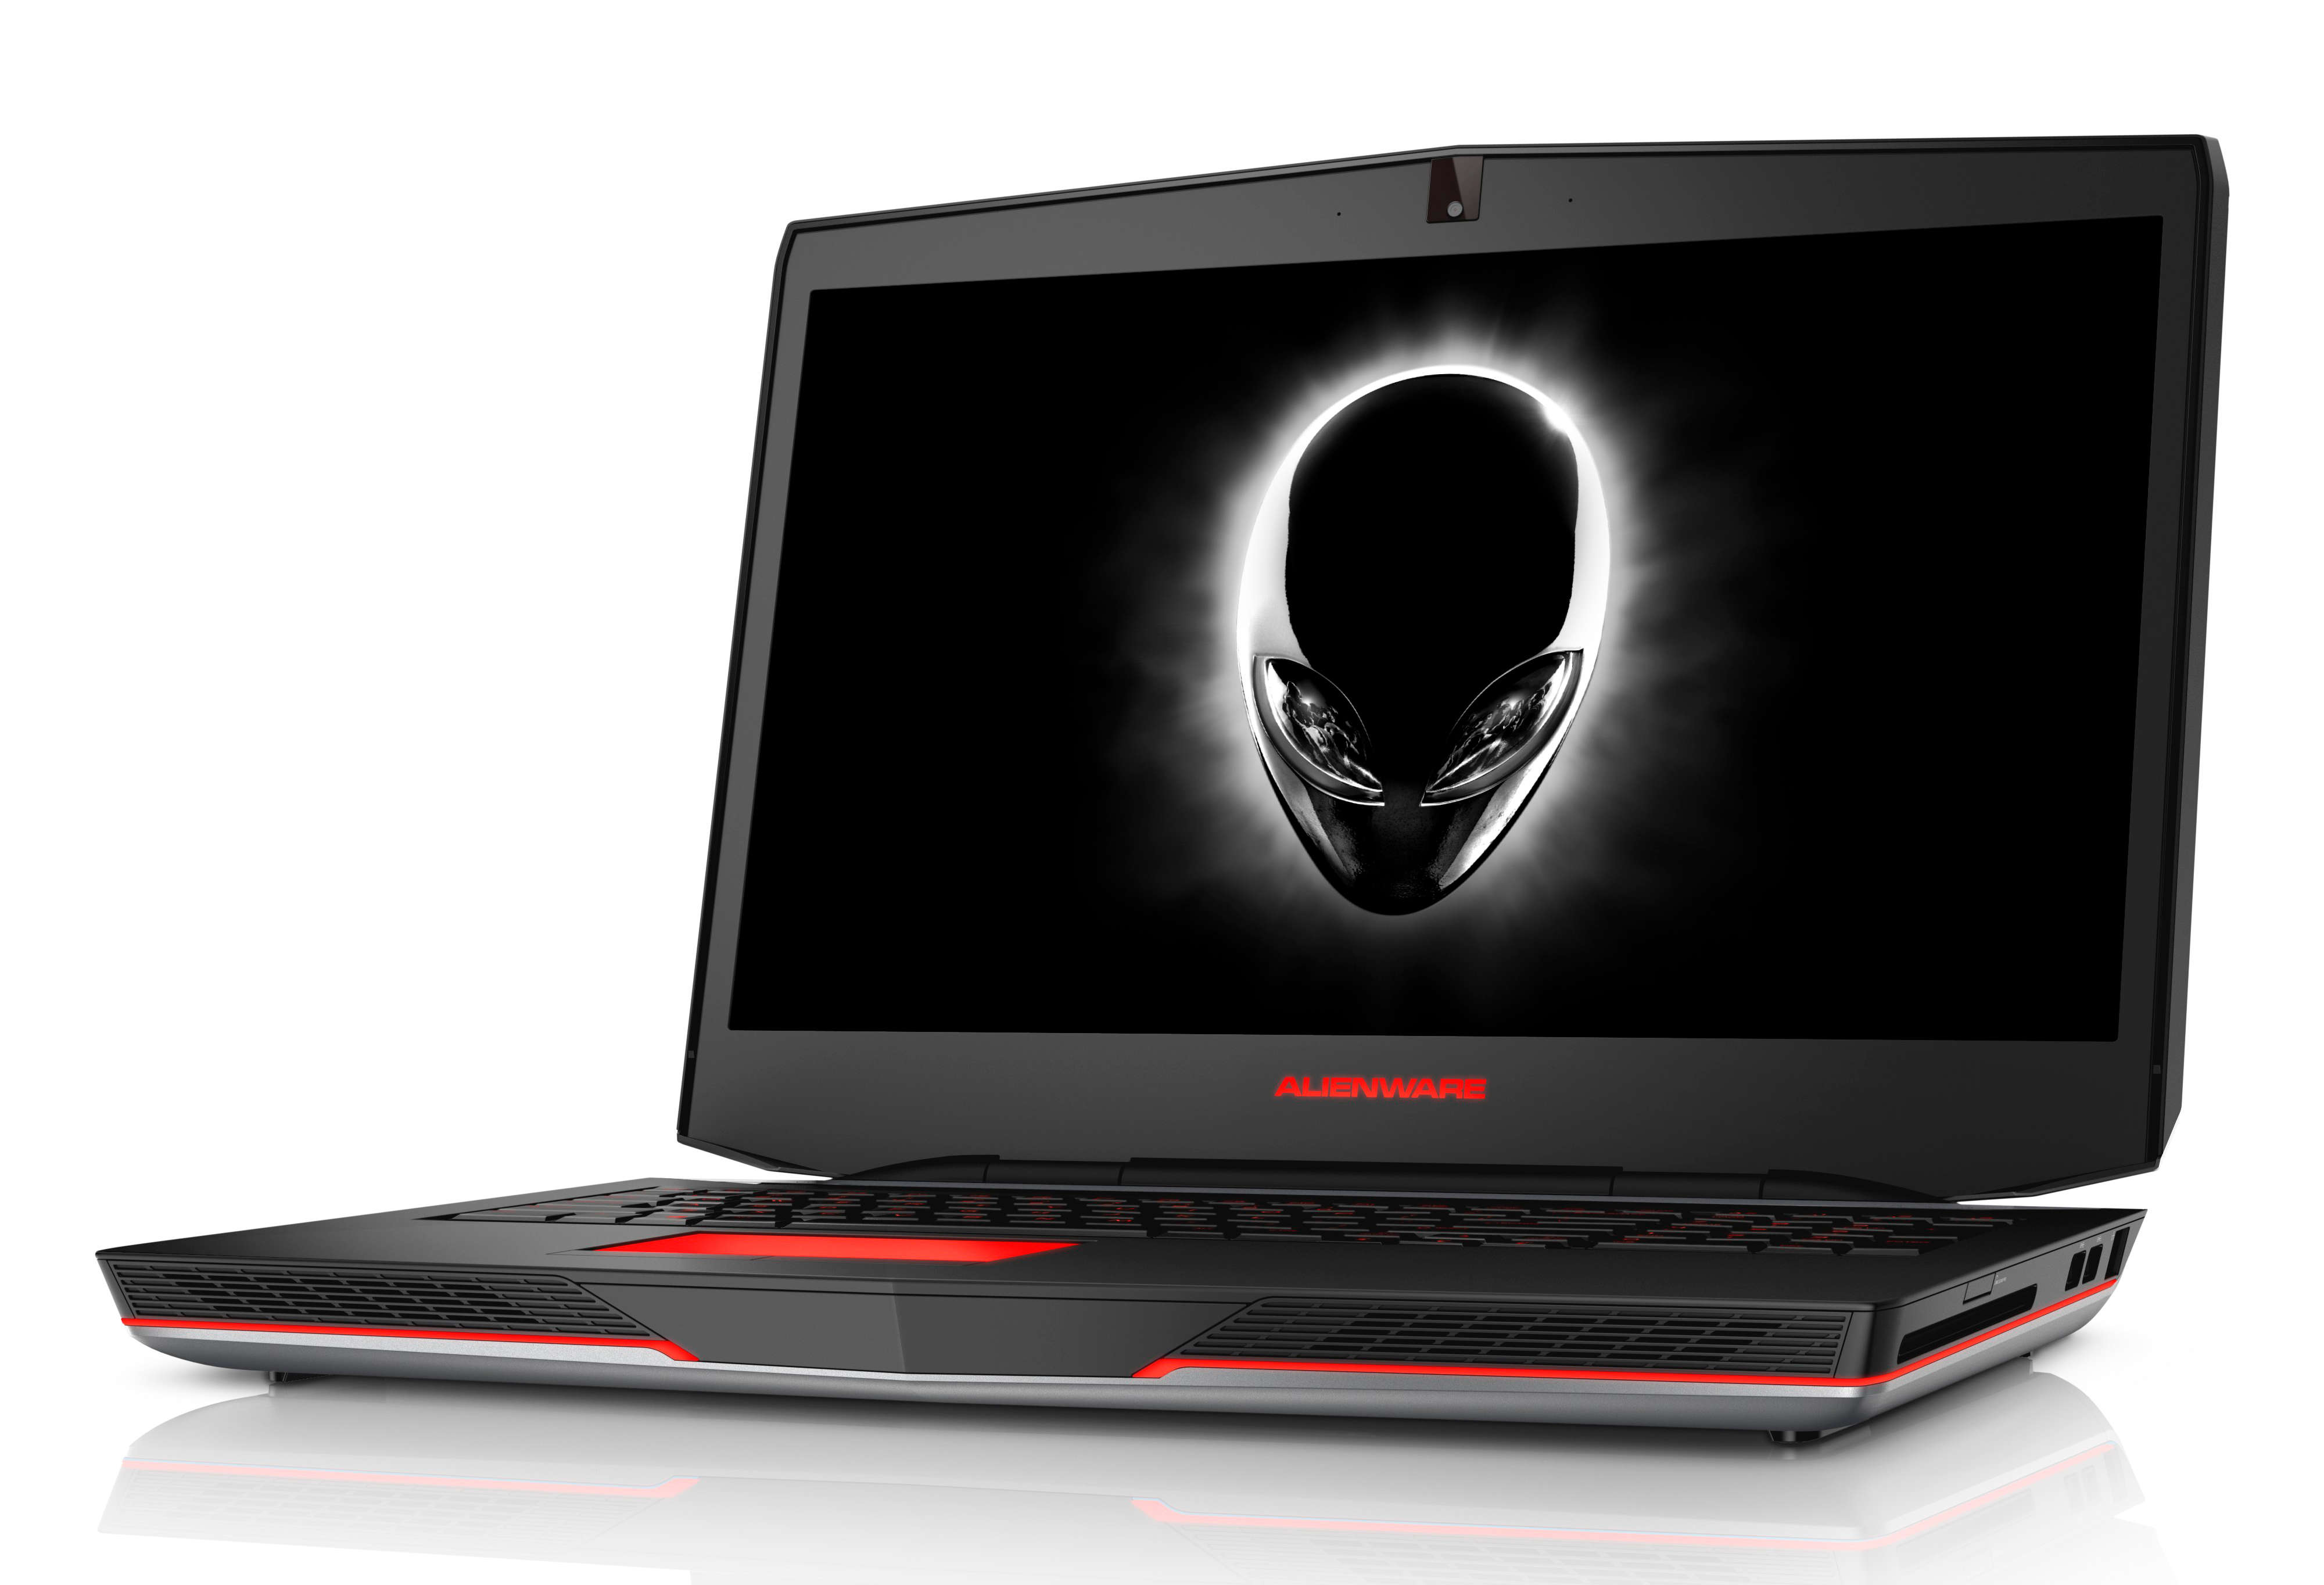 Download Drivers: Dell Alienware 17 Broadcom Bluetooth